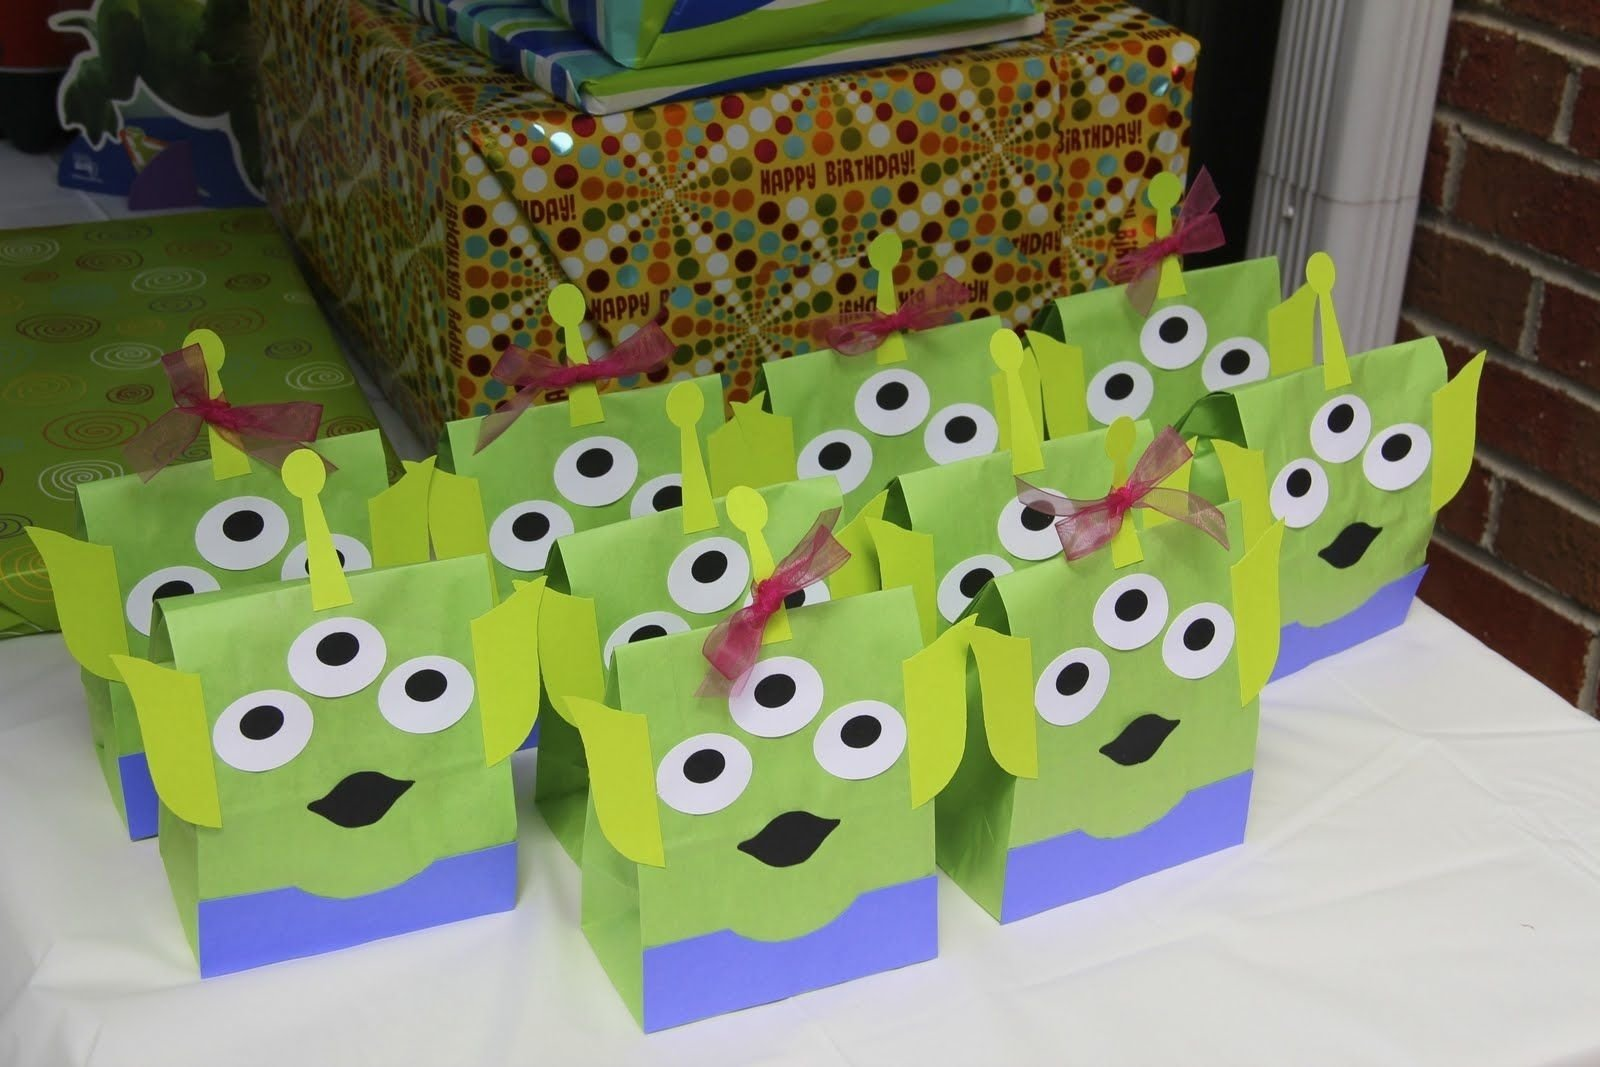 10 Most Recommended Buzz Lightyear Birthday Party Ideas delightfully random buzz lightyear birthday zebs b day